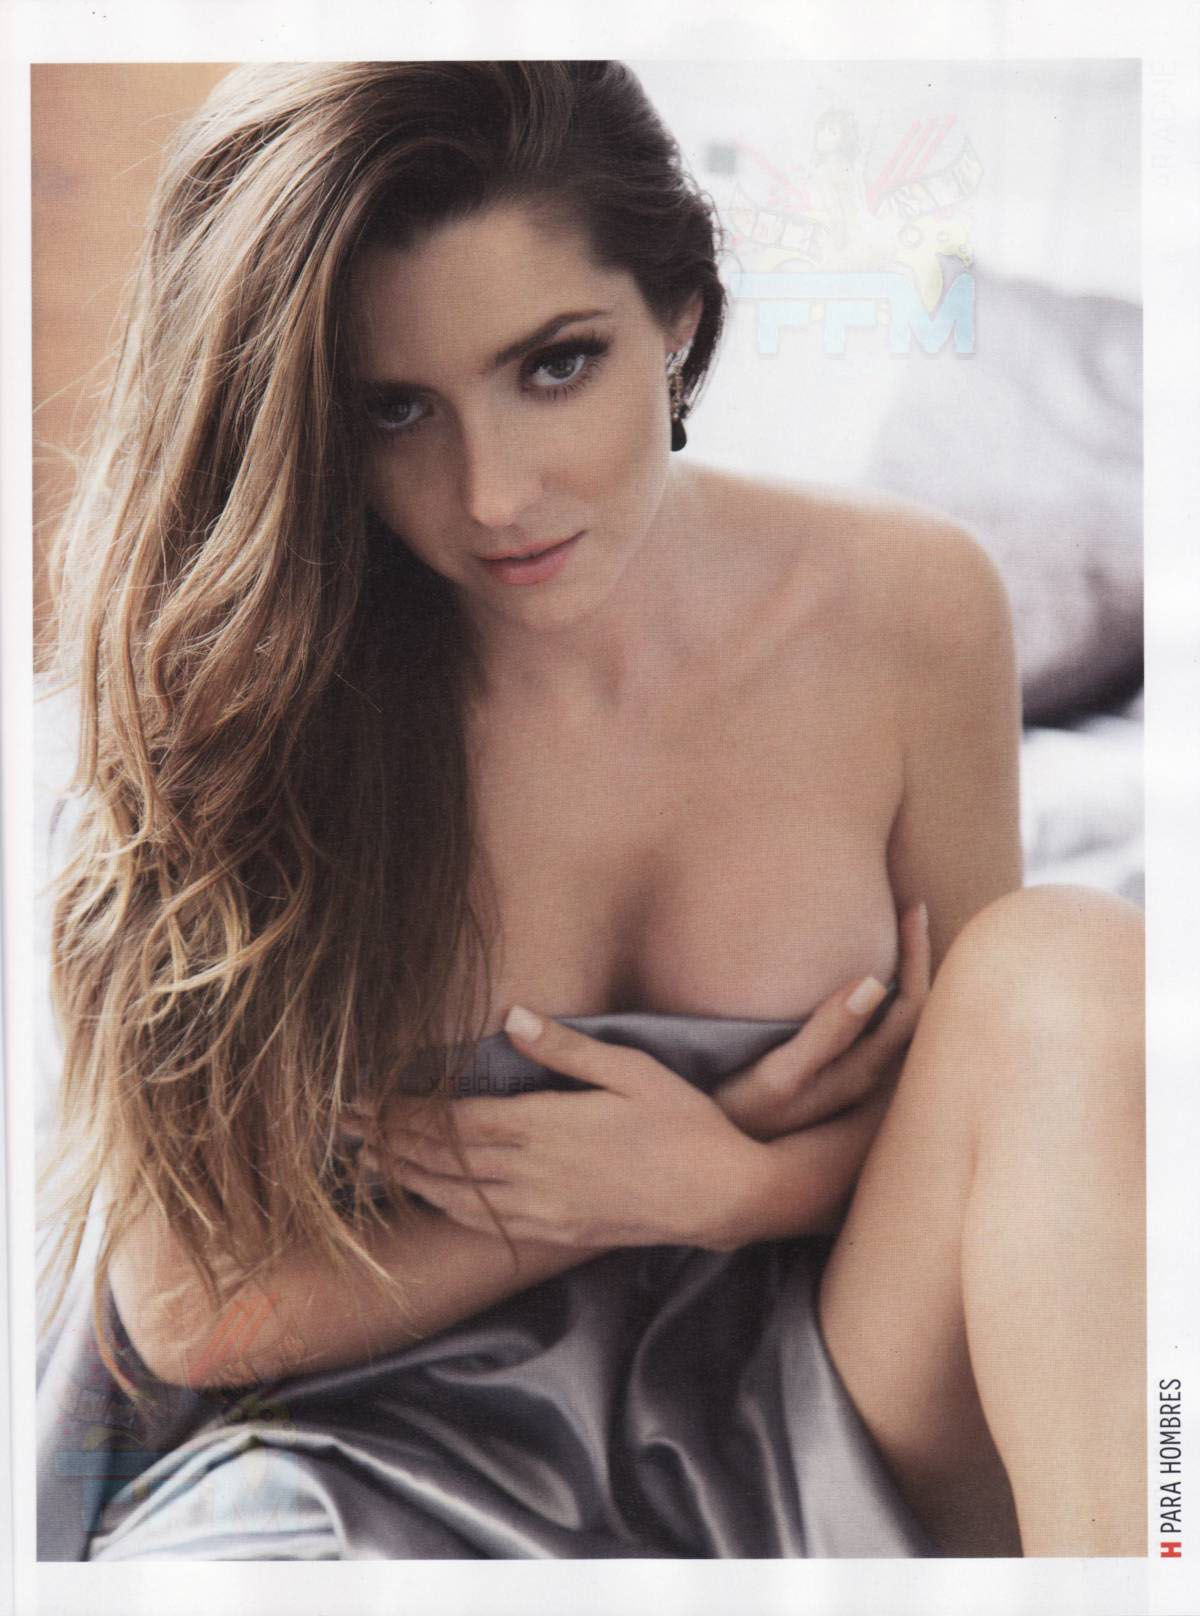 Ariadne diaz naked pictures can